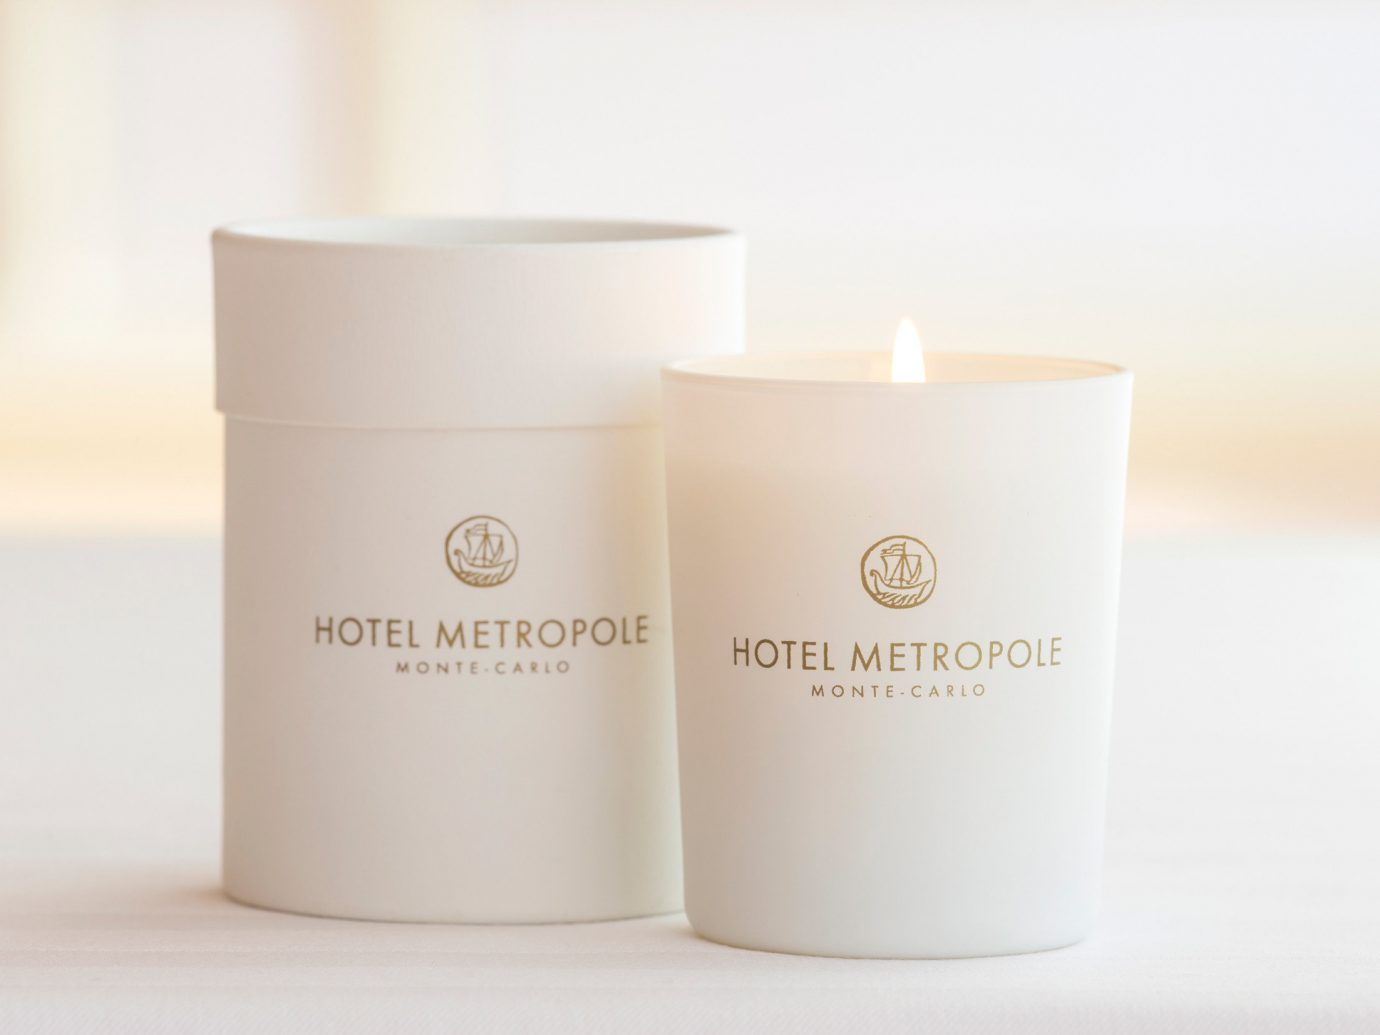 Hotels Luxury Travel cup candle coffee indoor lighting coffee cup flameless candle ceramic decor drinkware Dixie cup